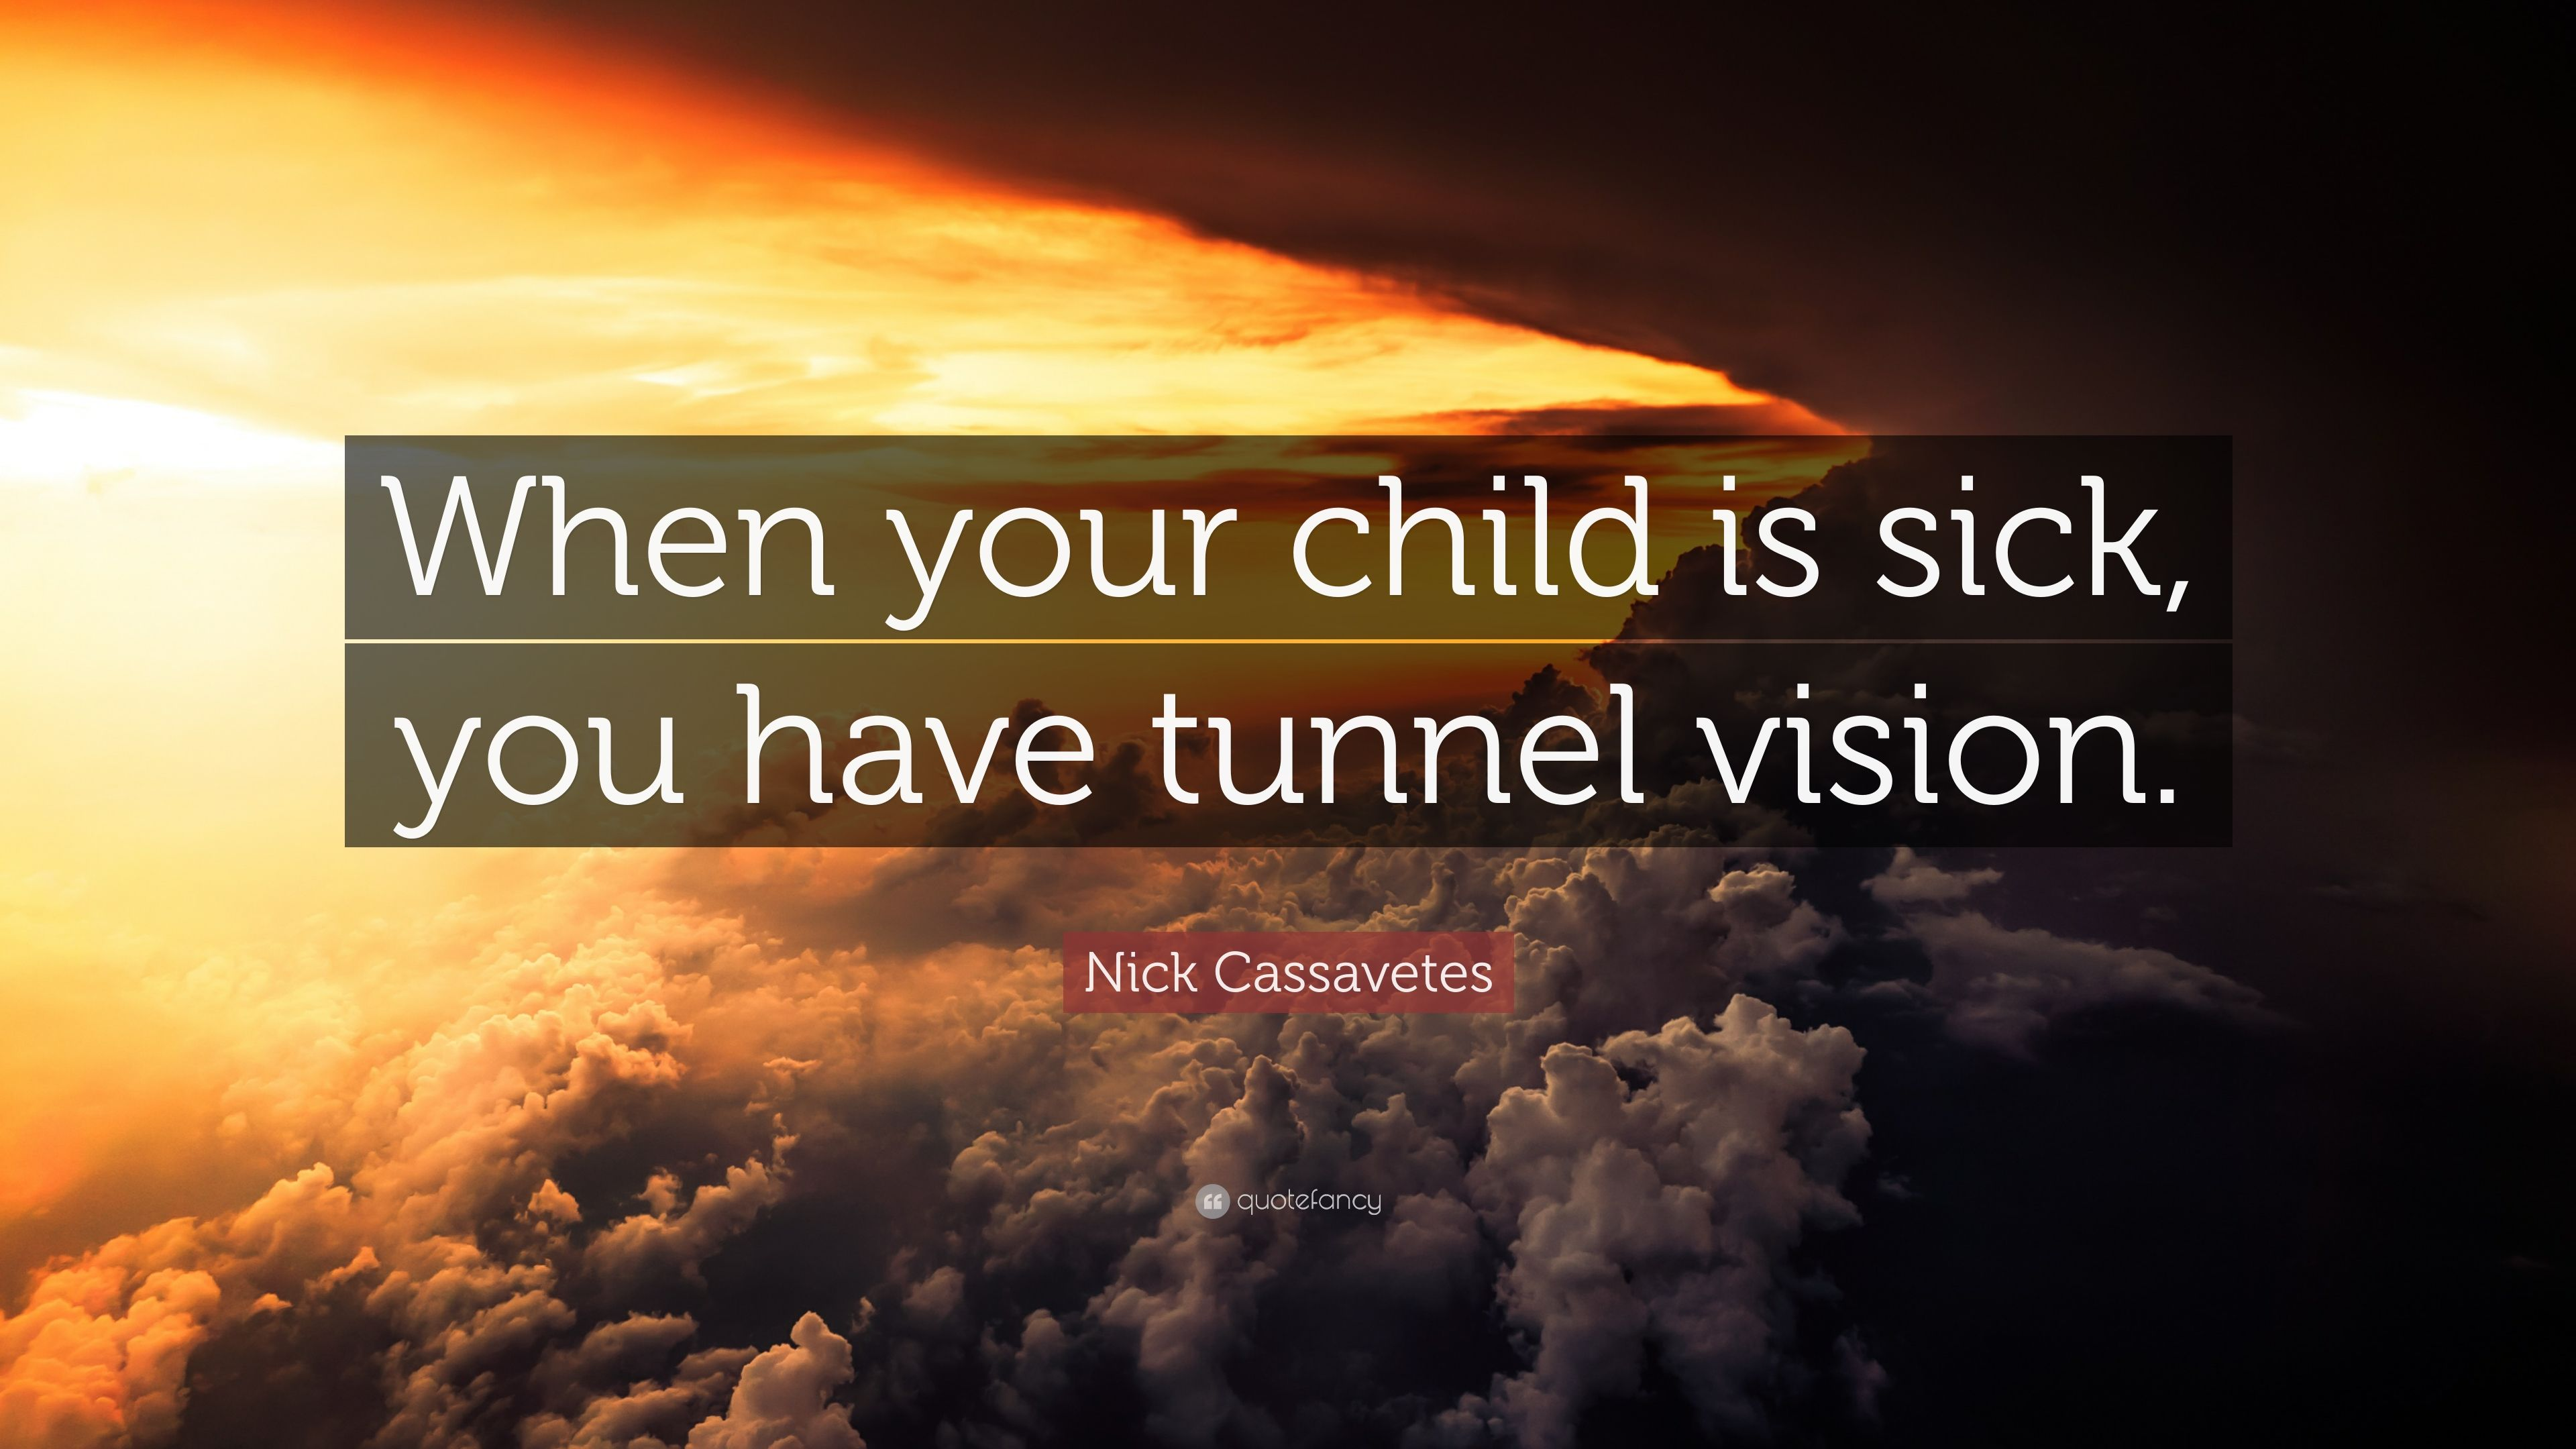 Nick Cassavetes Quote When Your Child Is Sick You Have Tunnel